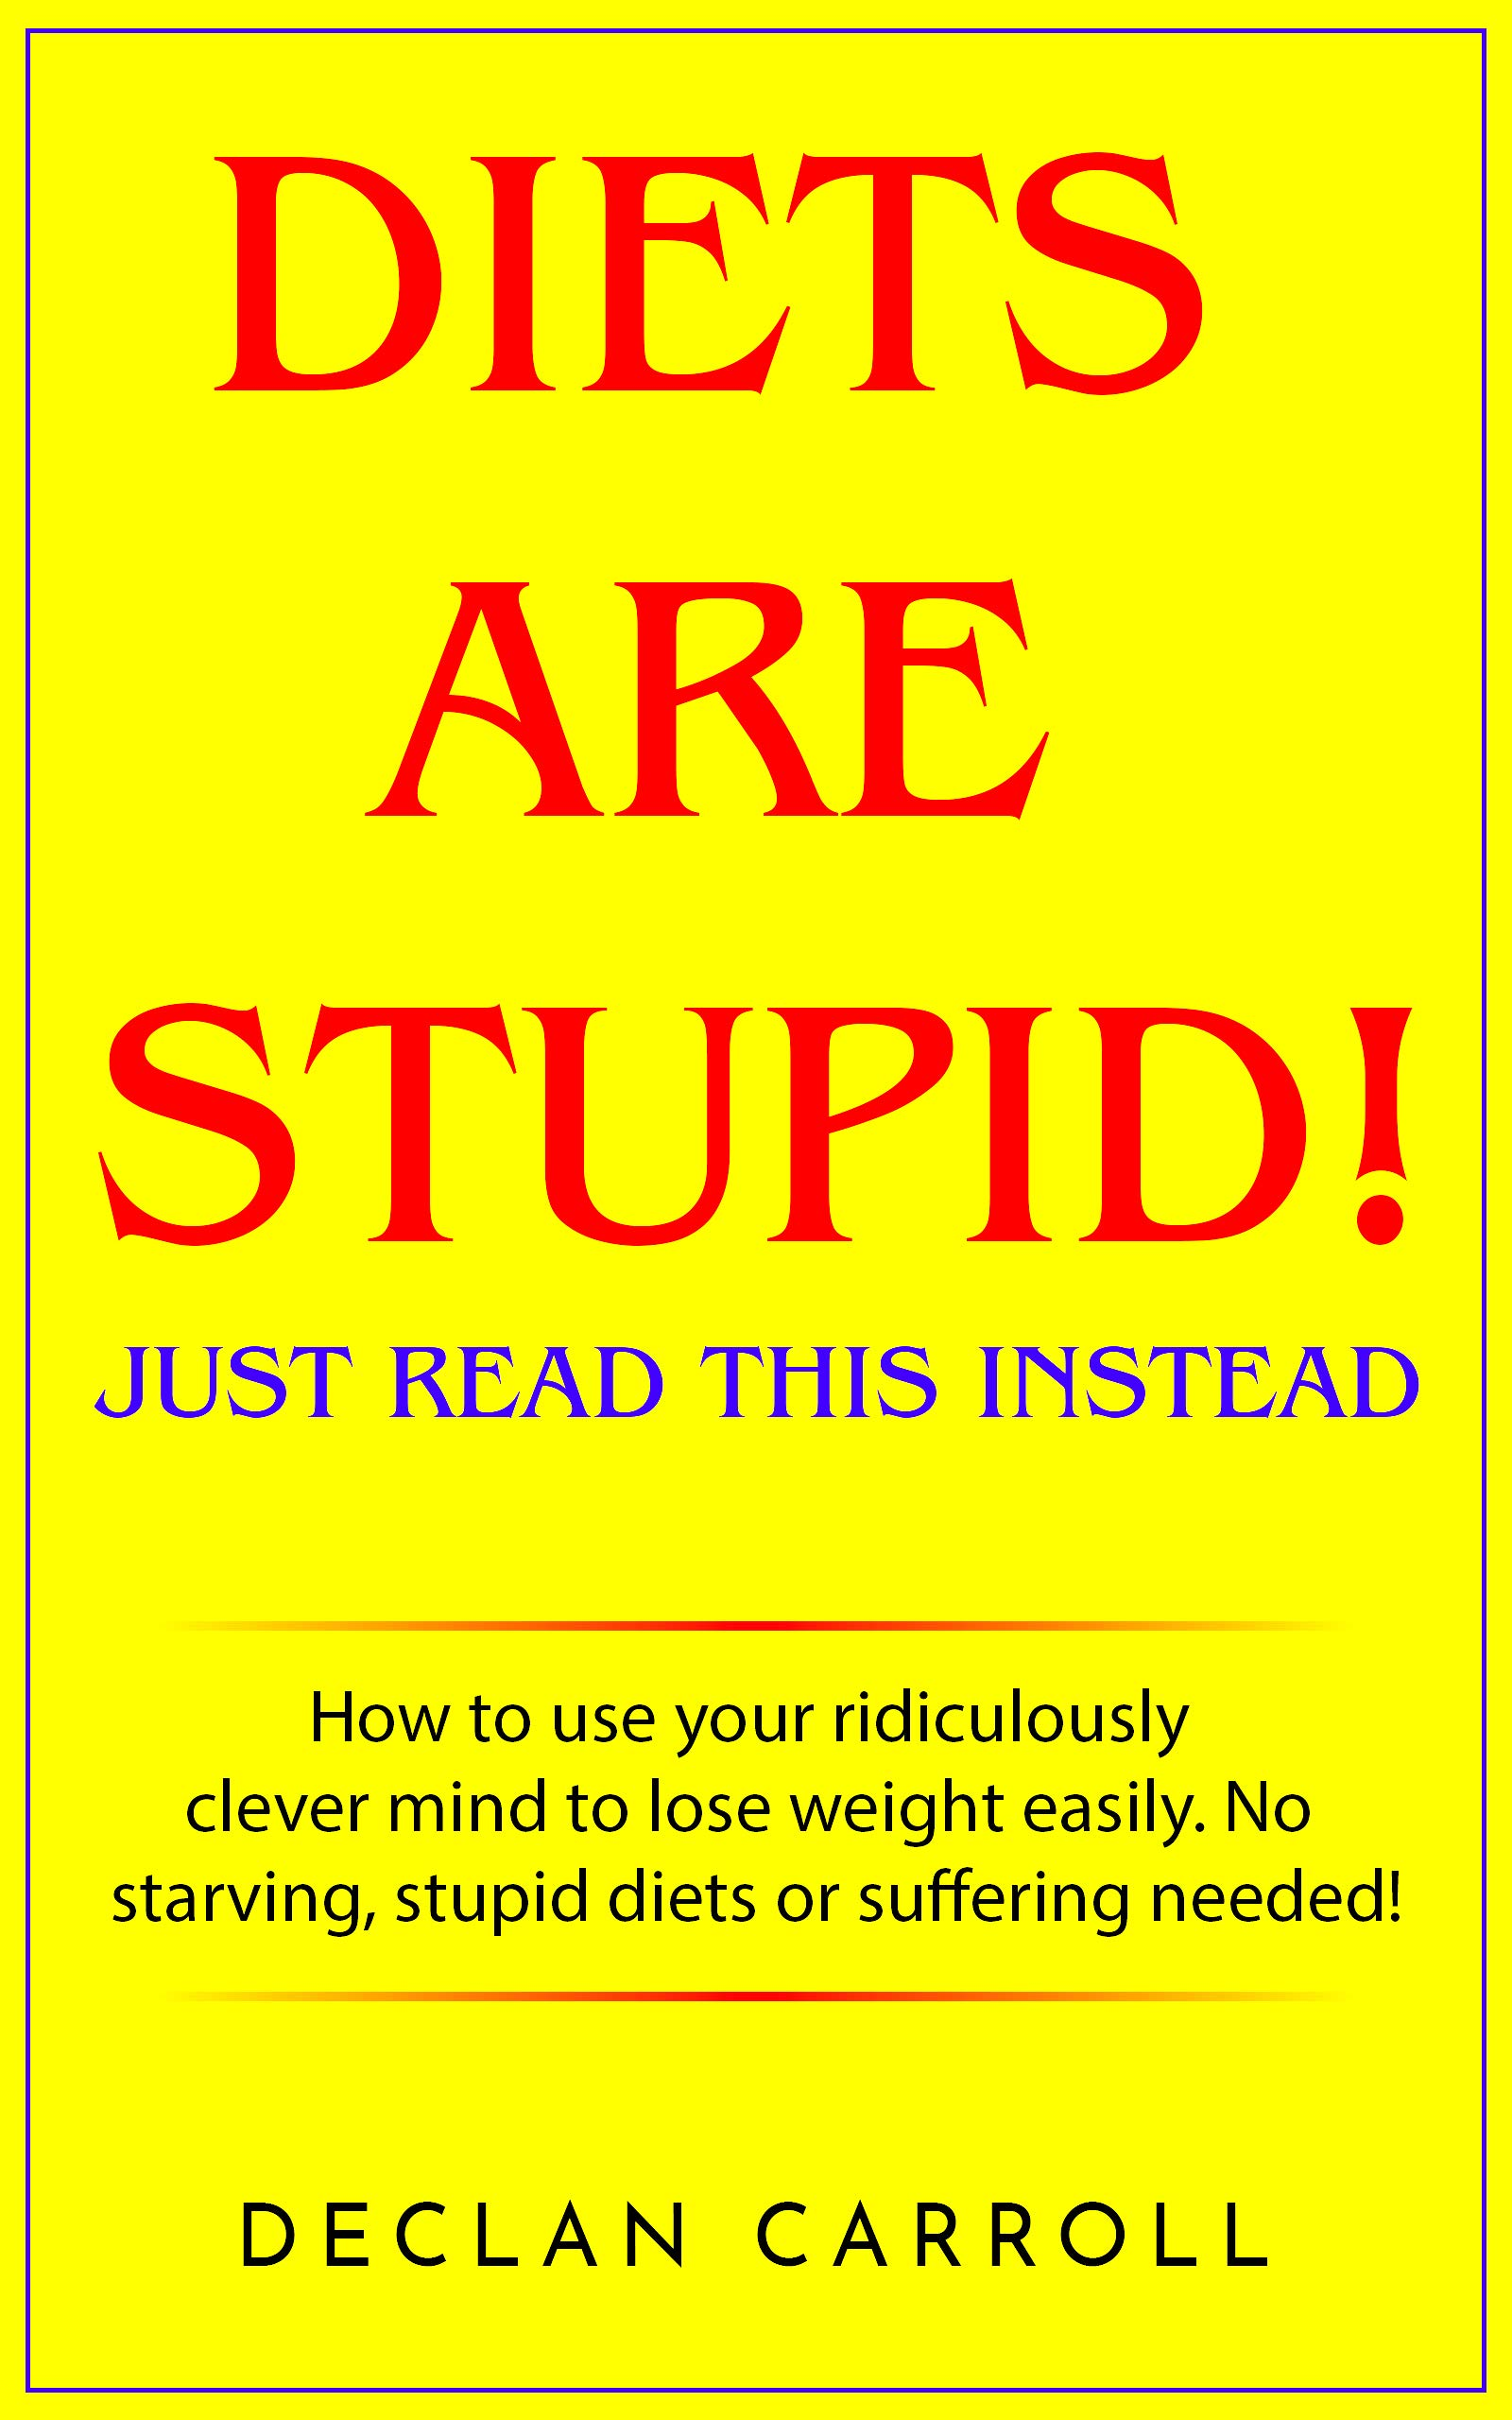 DIETS ARE STUPID  JUST READ THIS INSTEAD  How To Use Your Ridiculously Clever Mind To Lose Weight Easily. No Starving Stupid Diets Or Suffering Needed.  English Edition